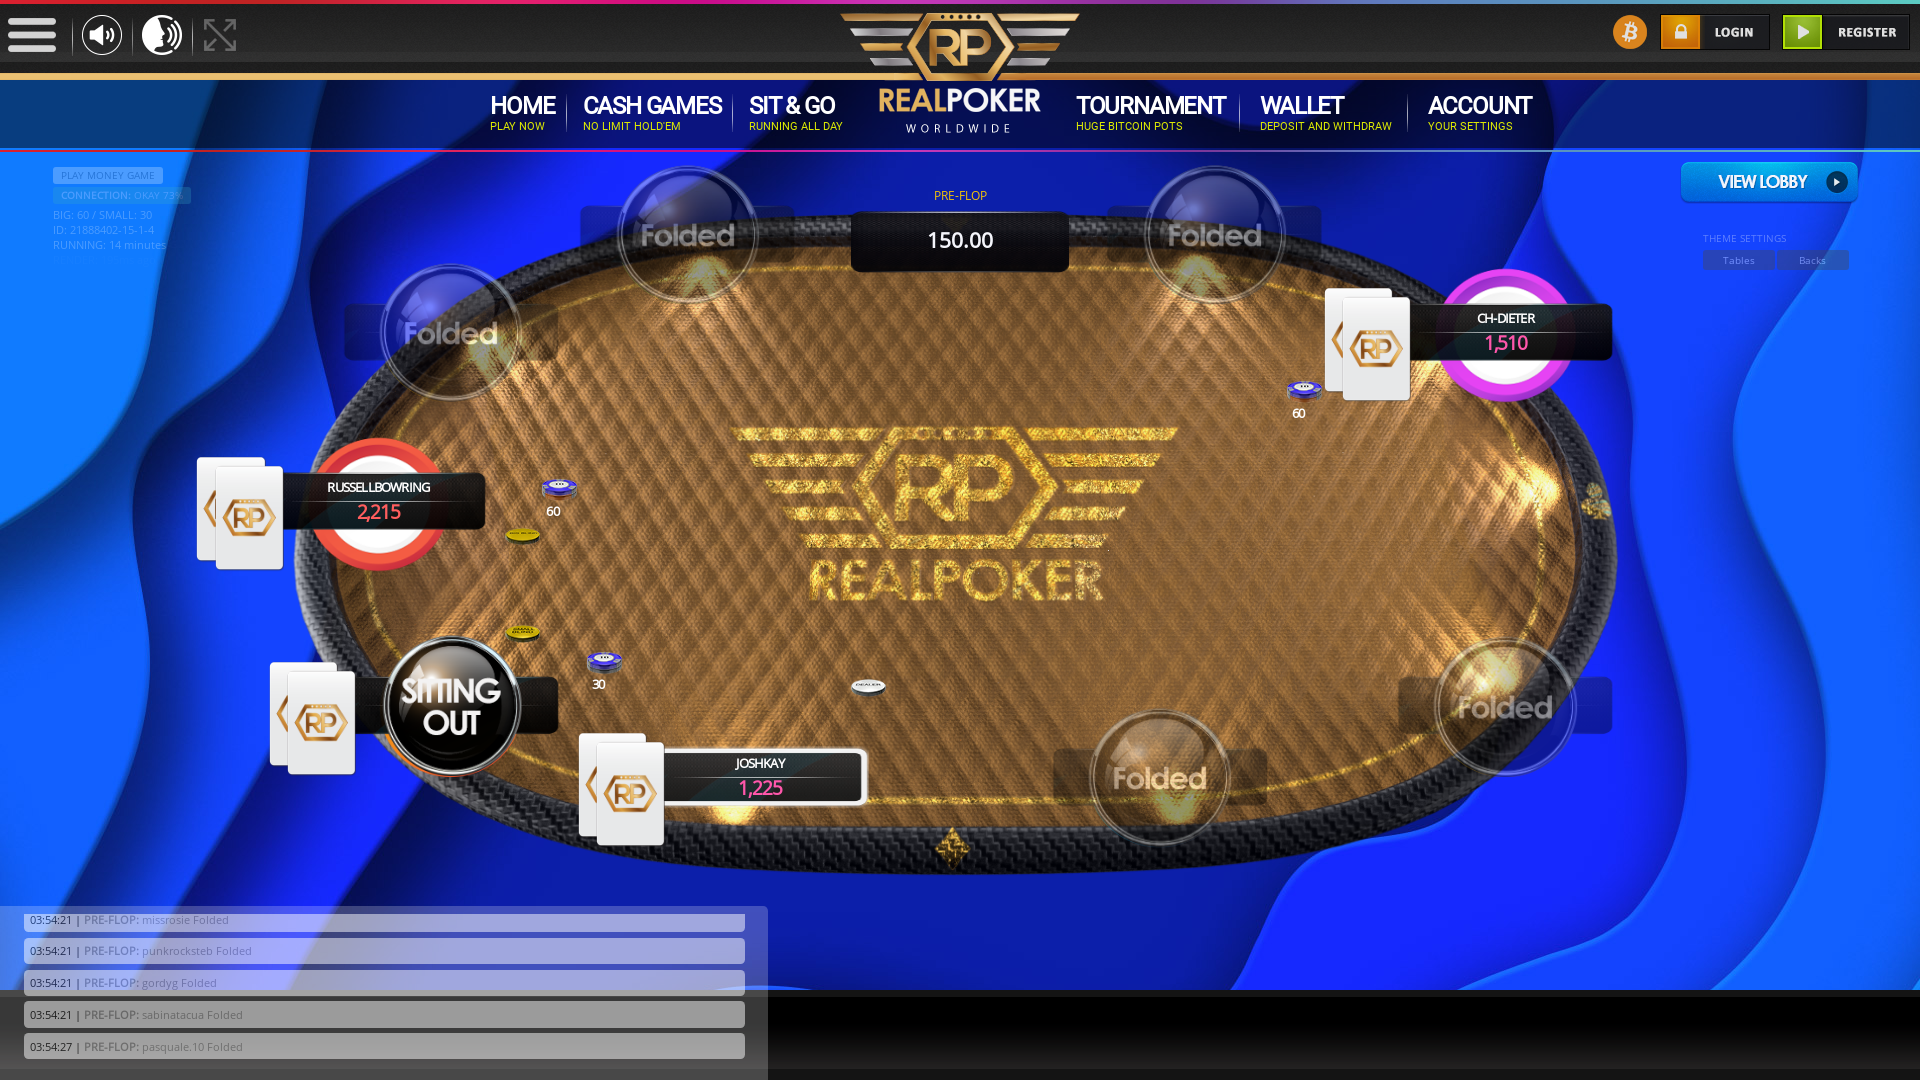 Macau Casino Bitcoin Poker from August